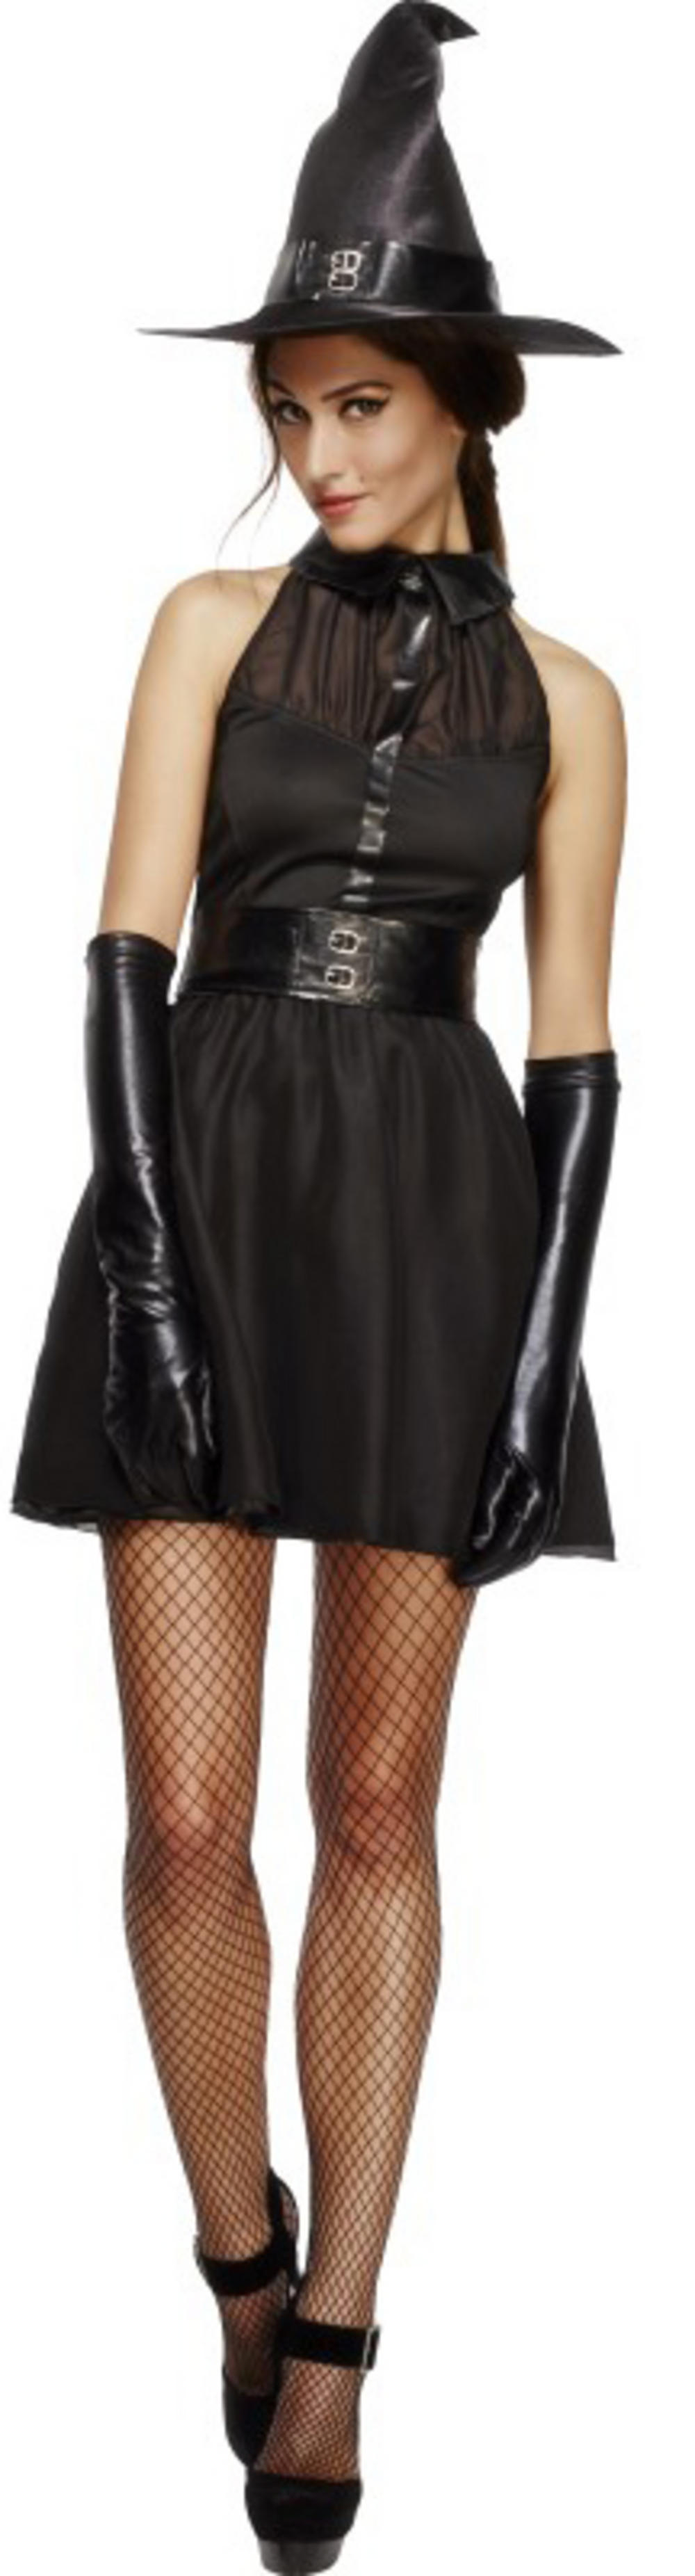 Fever Bewitching Vixen Ladies Costume